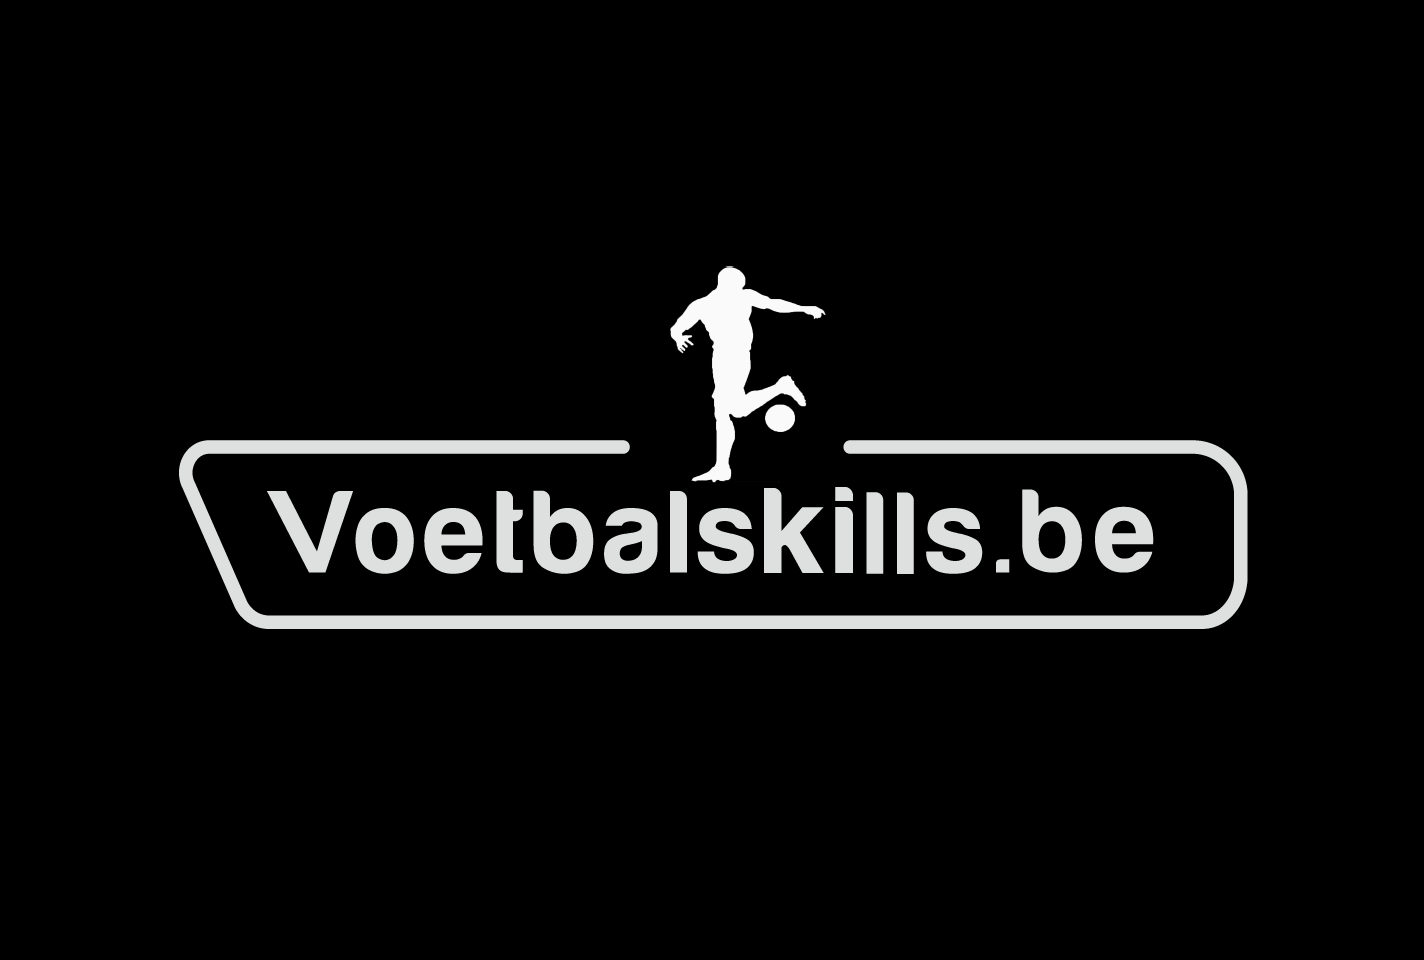 Voetbalskills.be